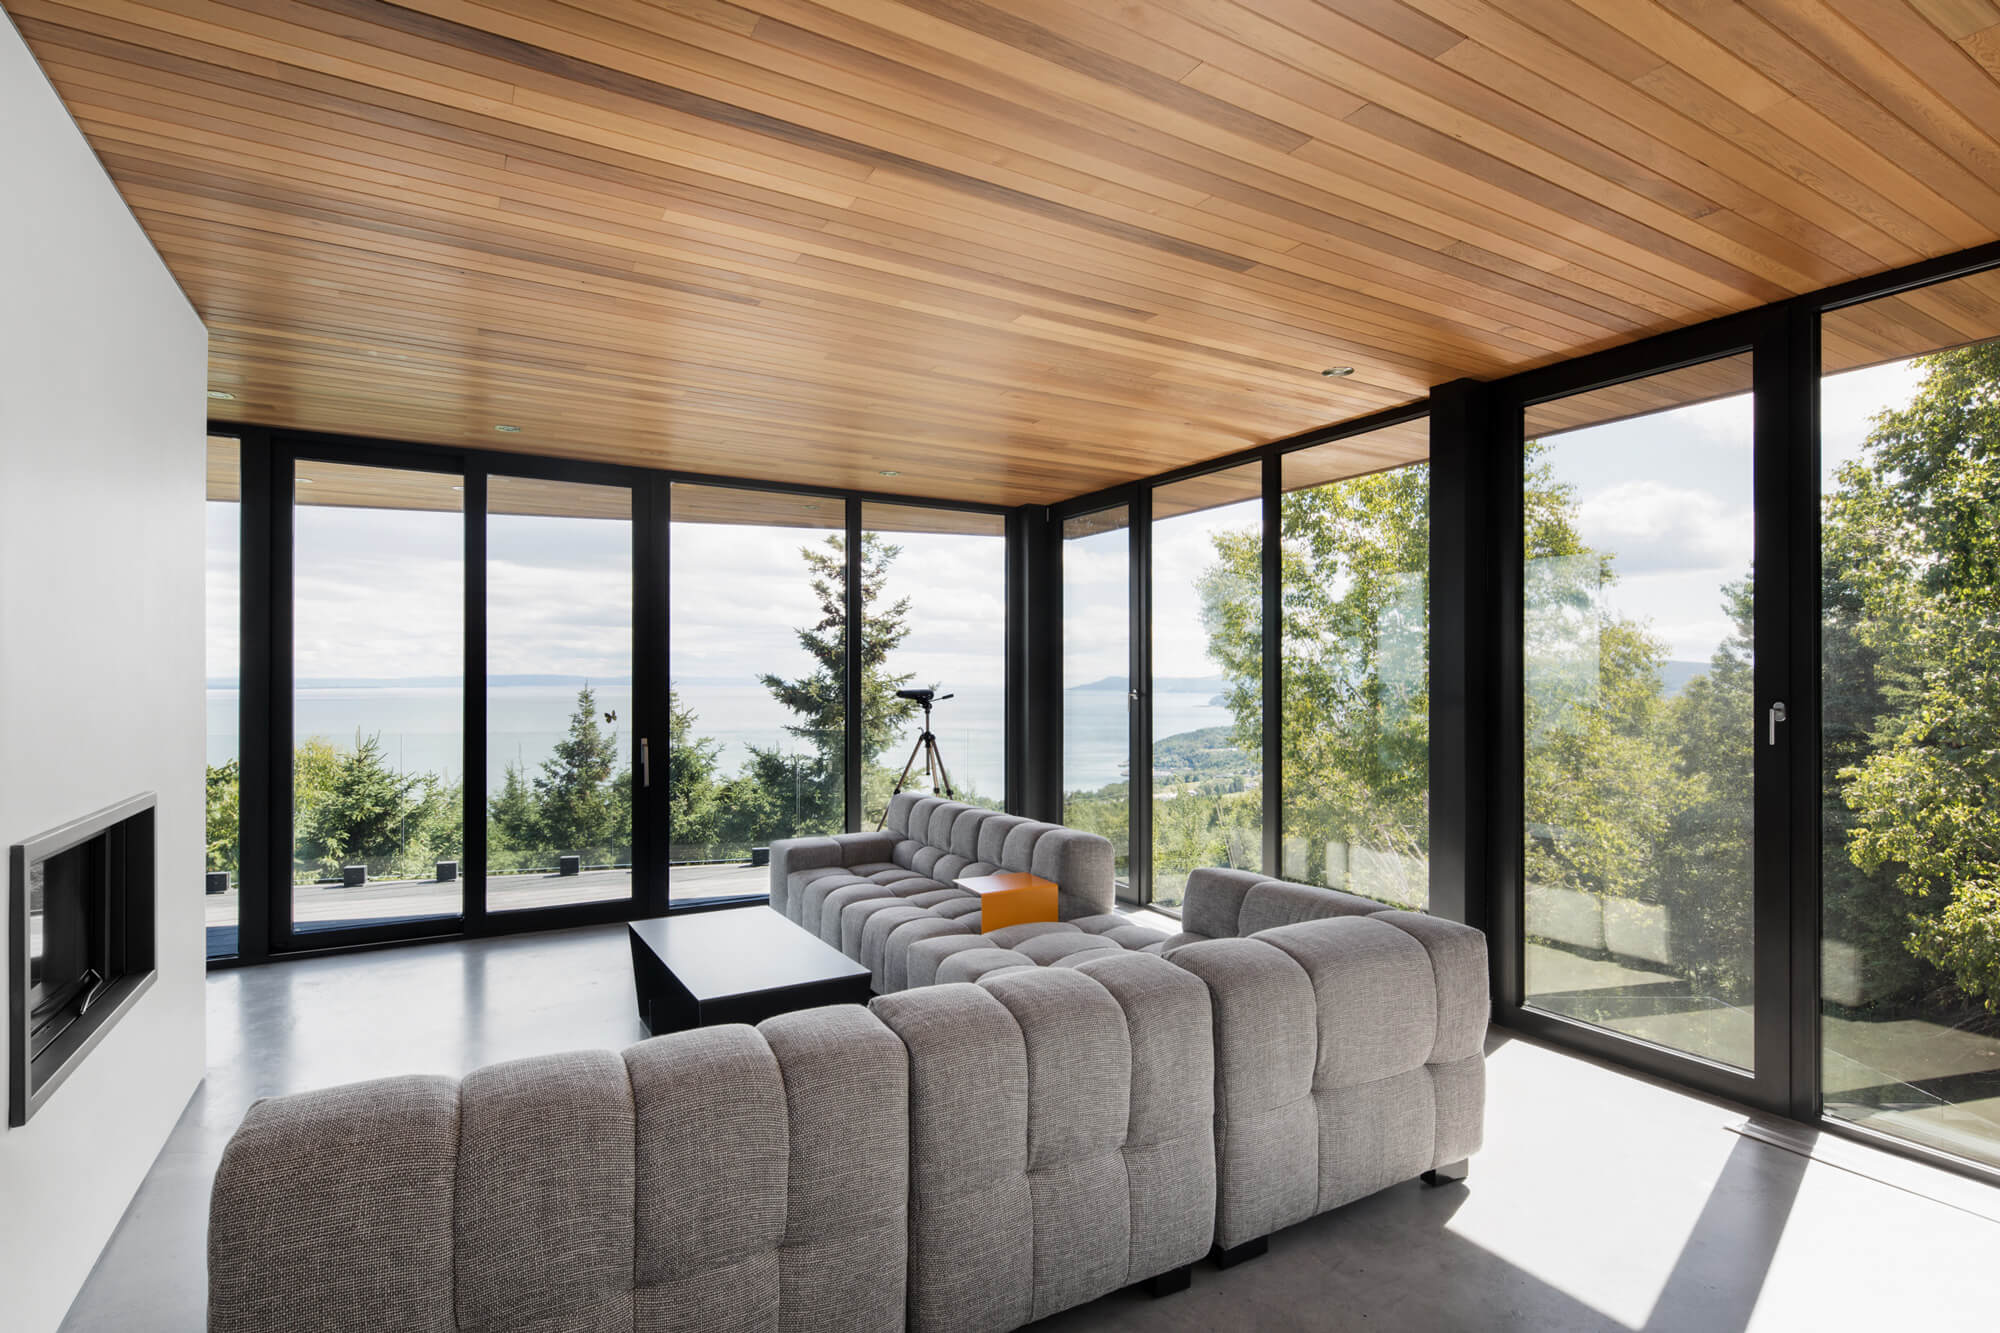 370_BOURGEOIS-LECHASSEUR-ARCHITECTES_RESIDENCE-ALTAIR_03